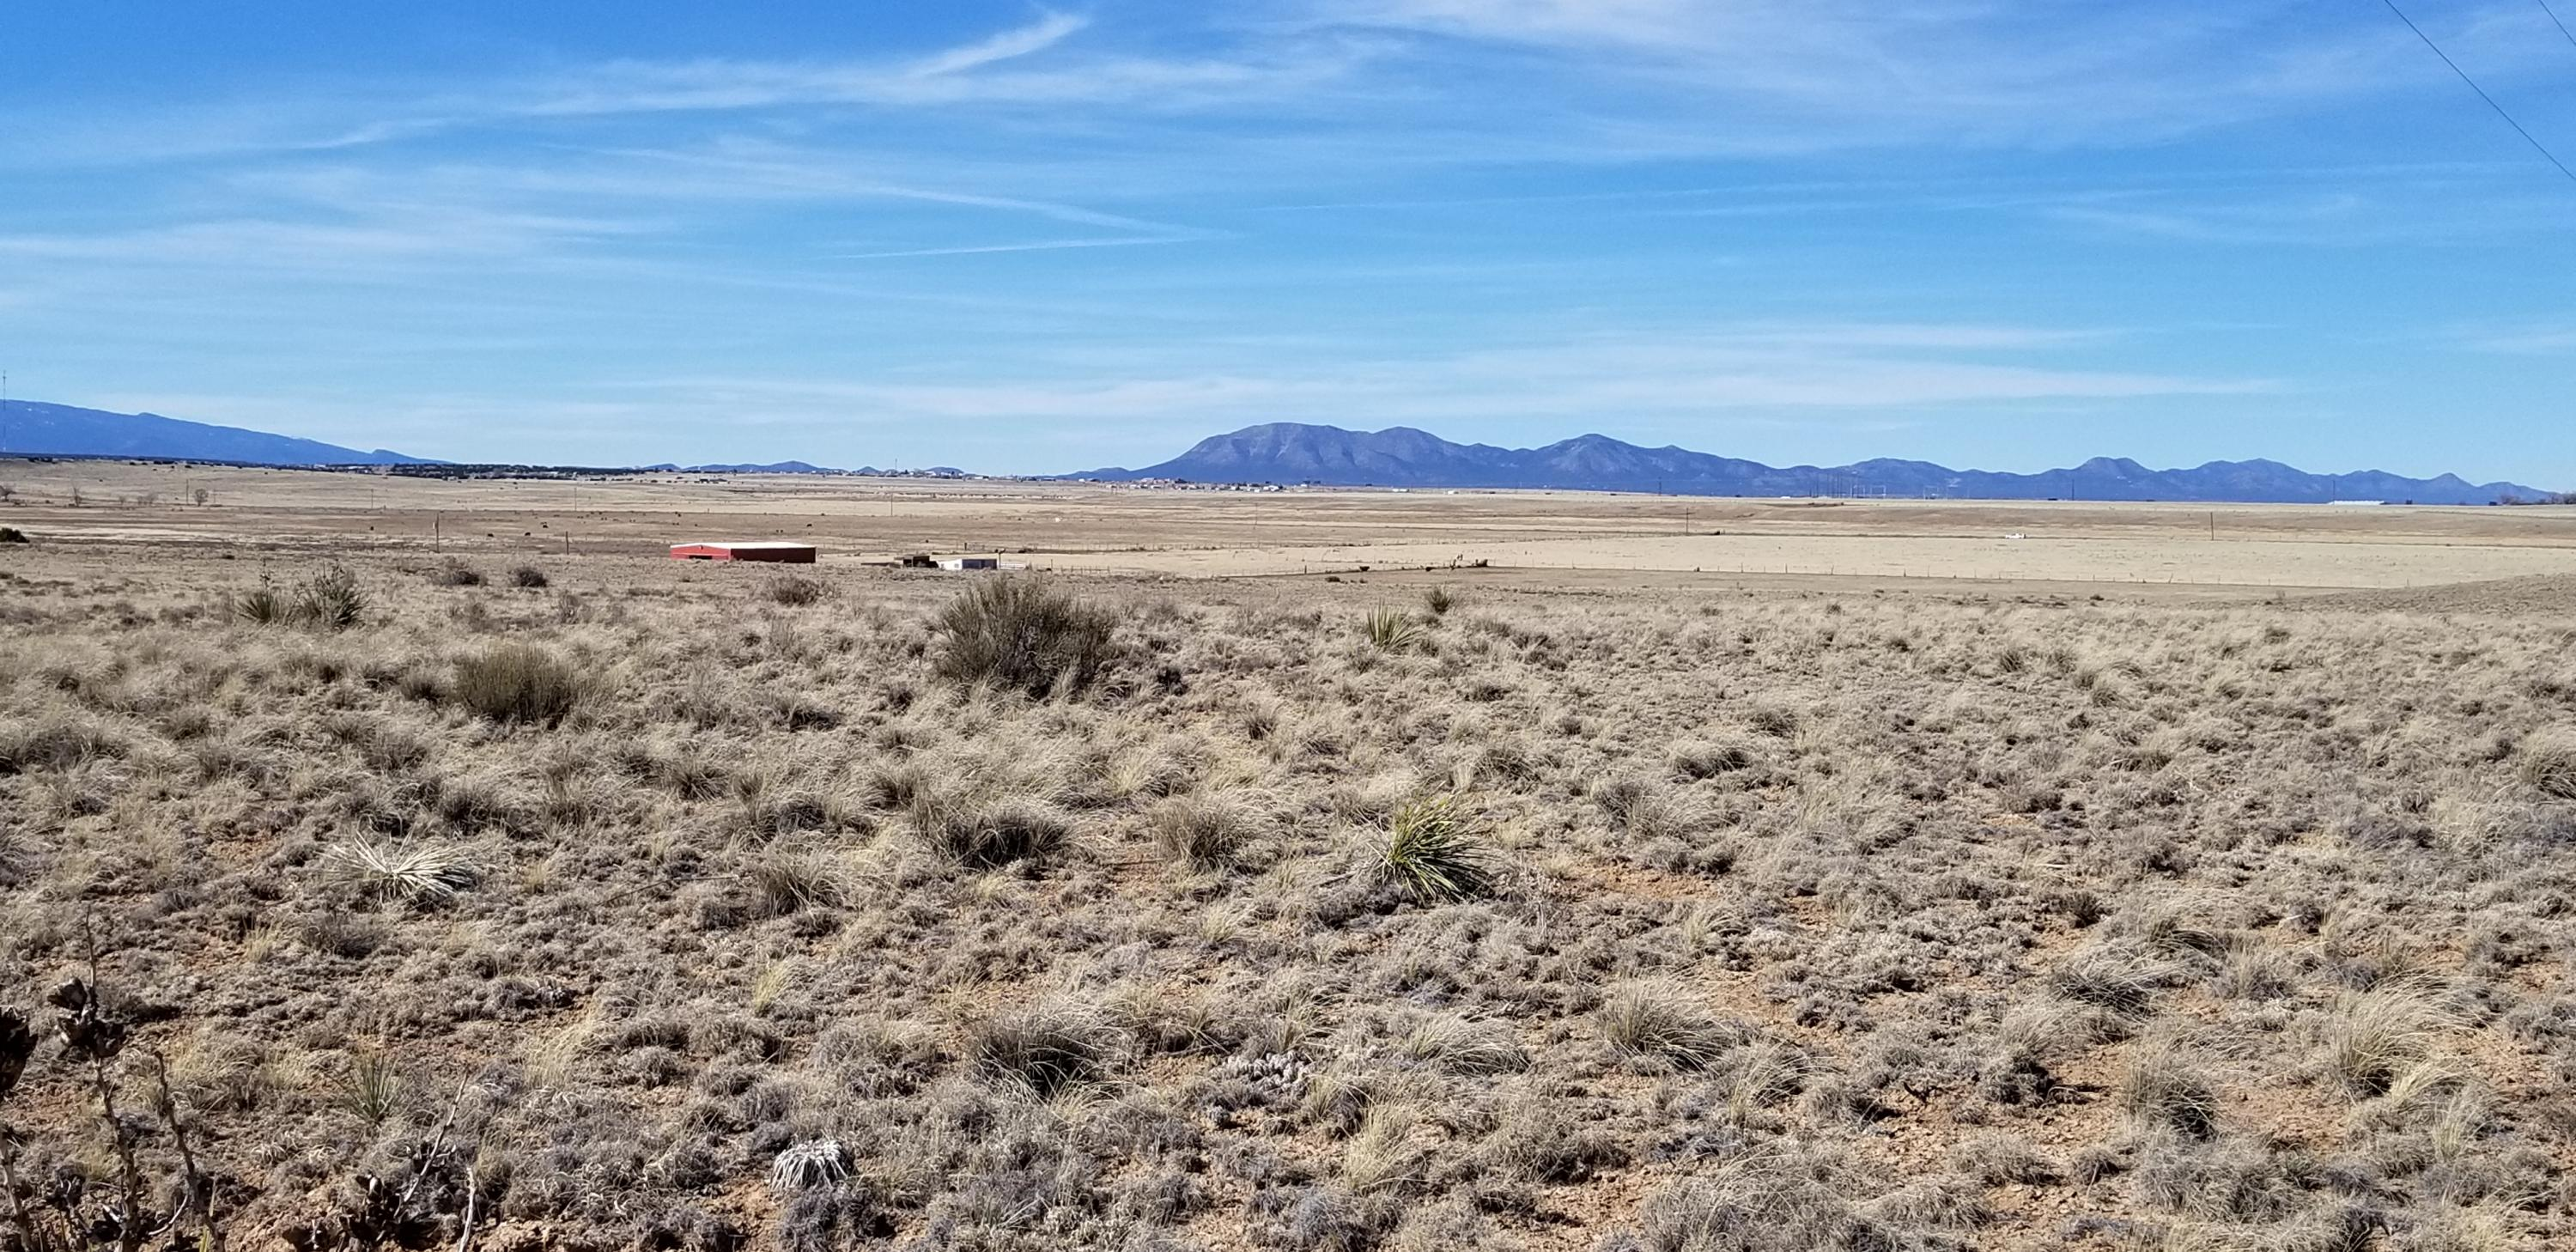 Tract 1 Broadmoor Road, Moriarty, NM 87035 - Moriarty, NM real estate listing